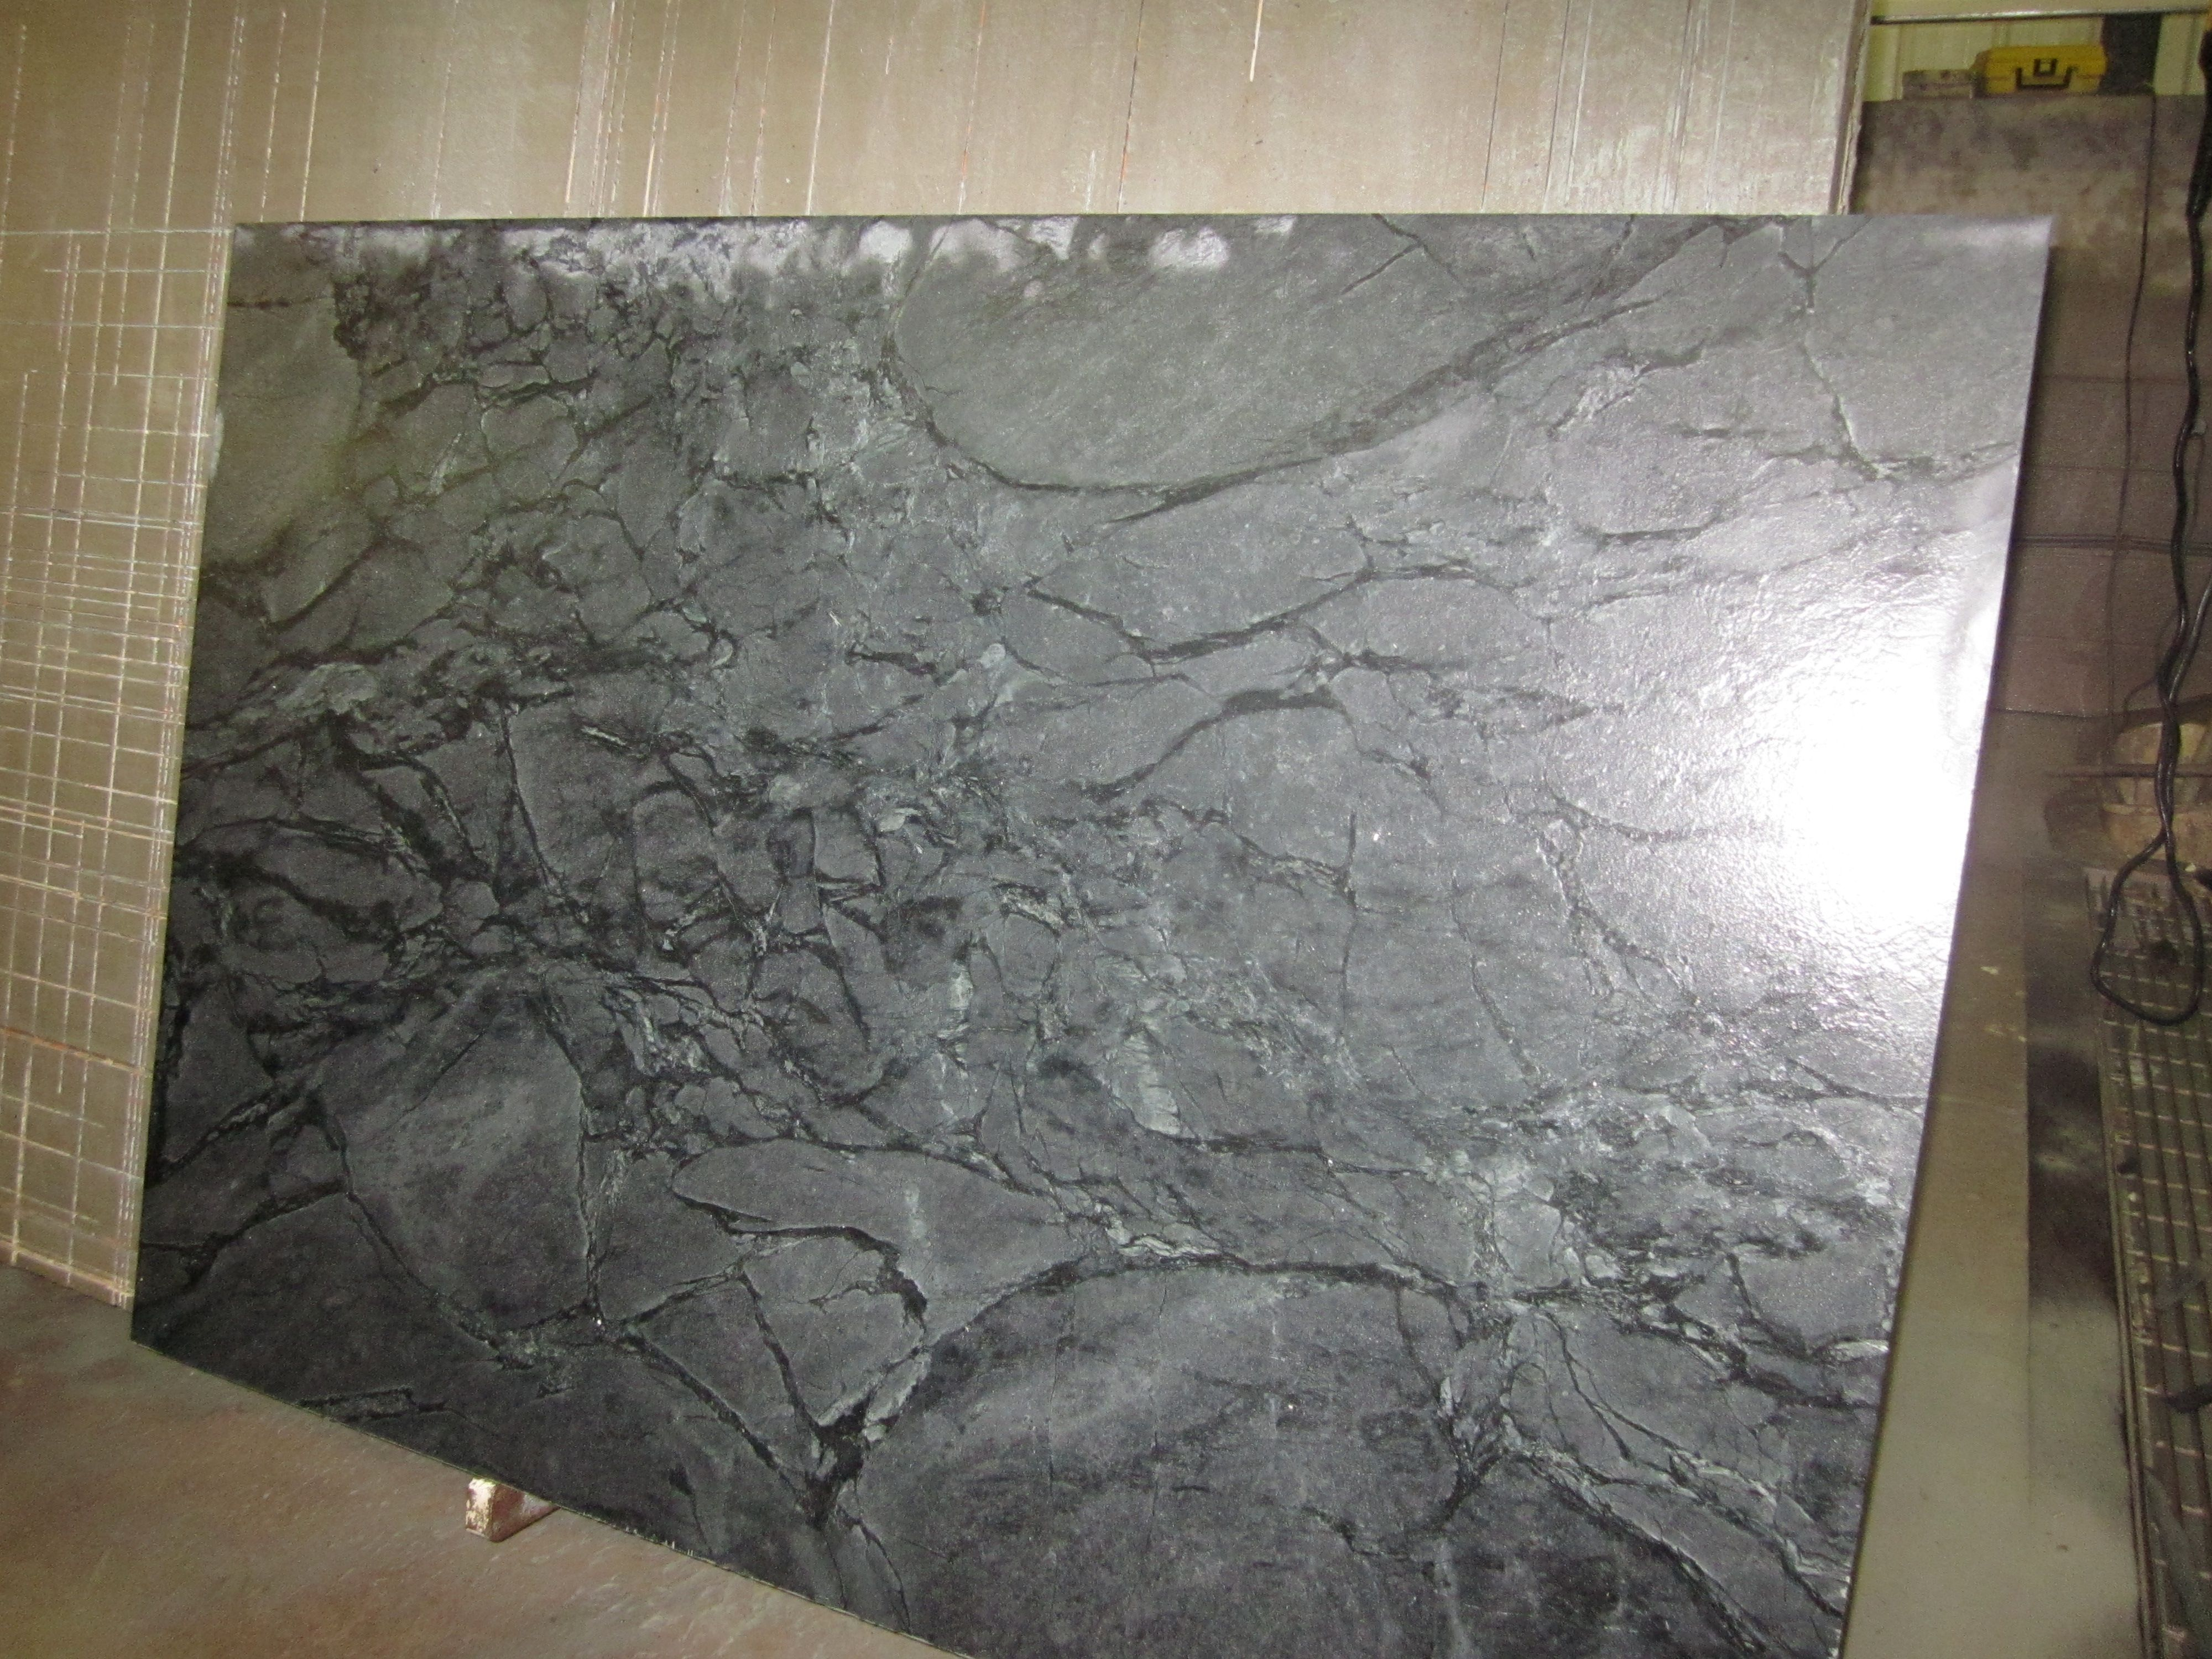 Our Natural Slate Counter Tops Are Excellent Choices For Kitchens And Bathrooms Blackcountert Cost Of Granite Countertops Countertops Fake Granite Countertops